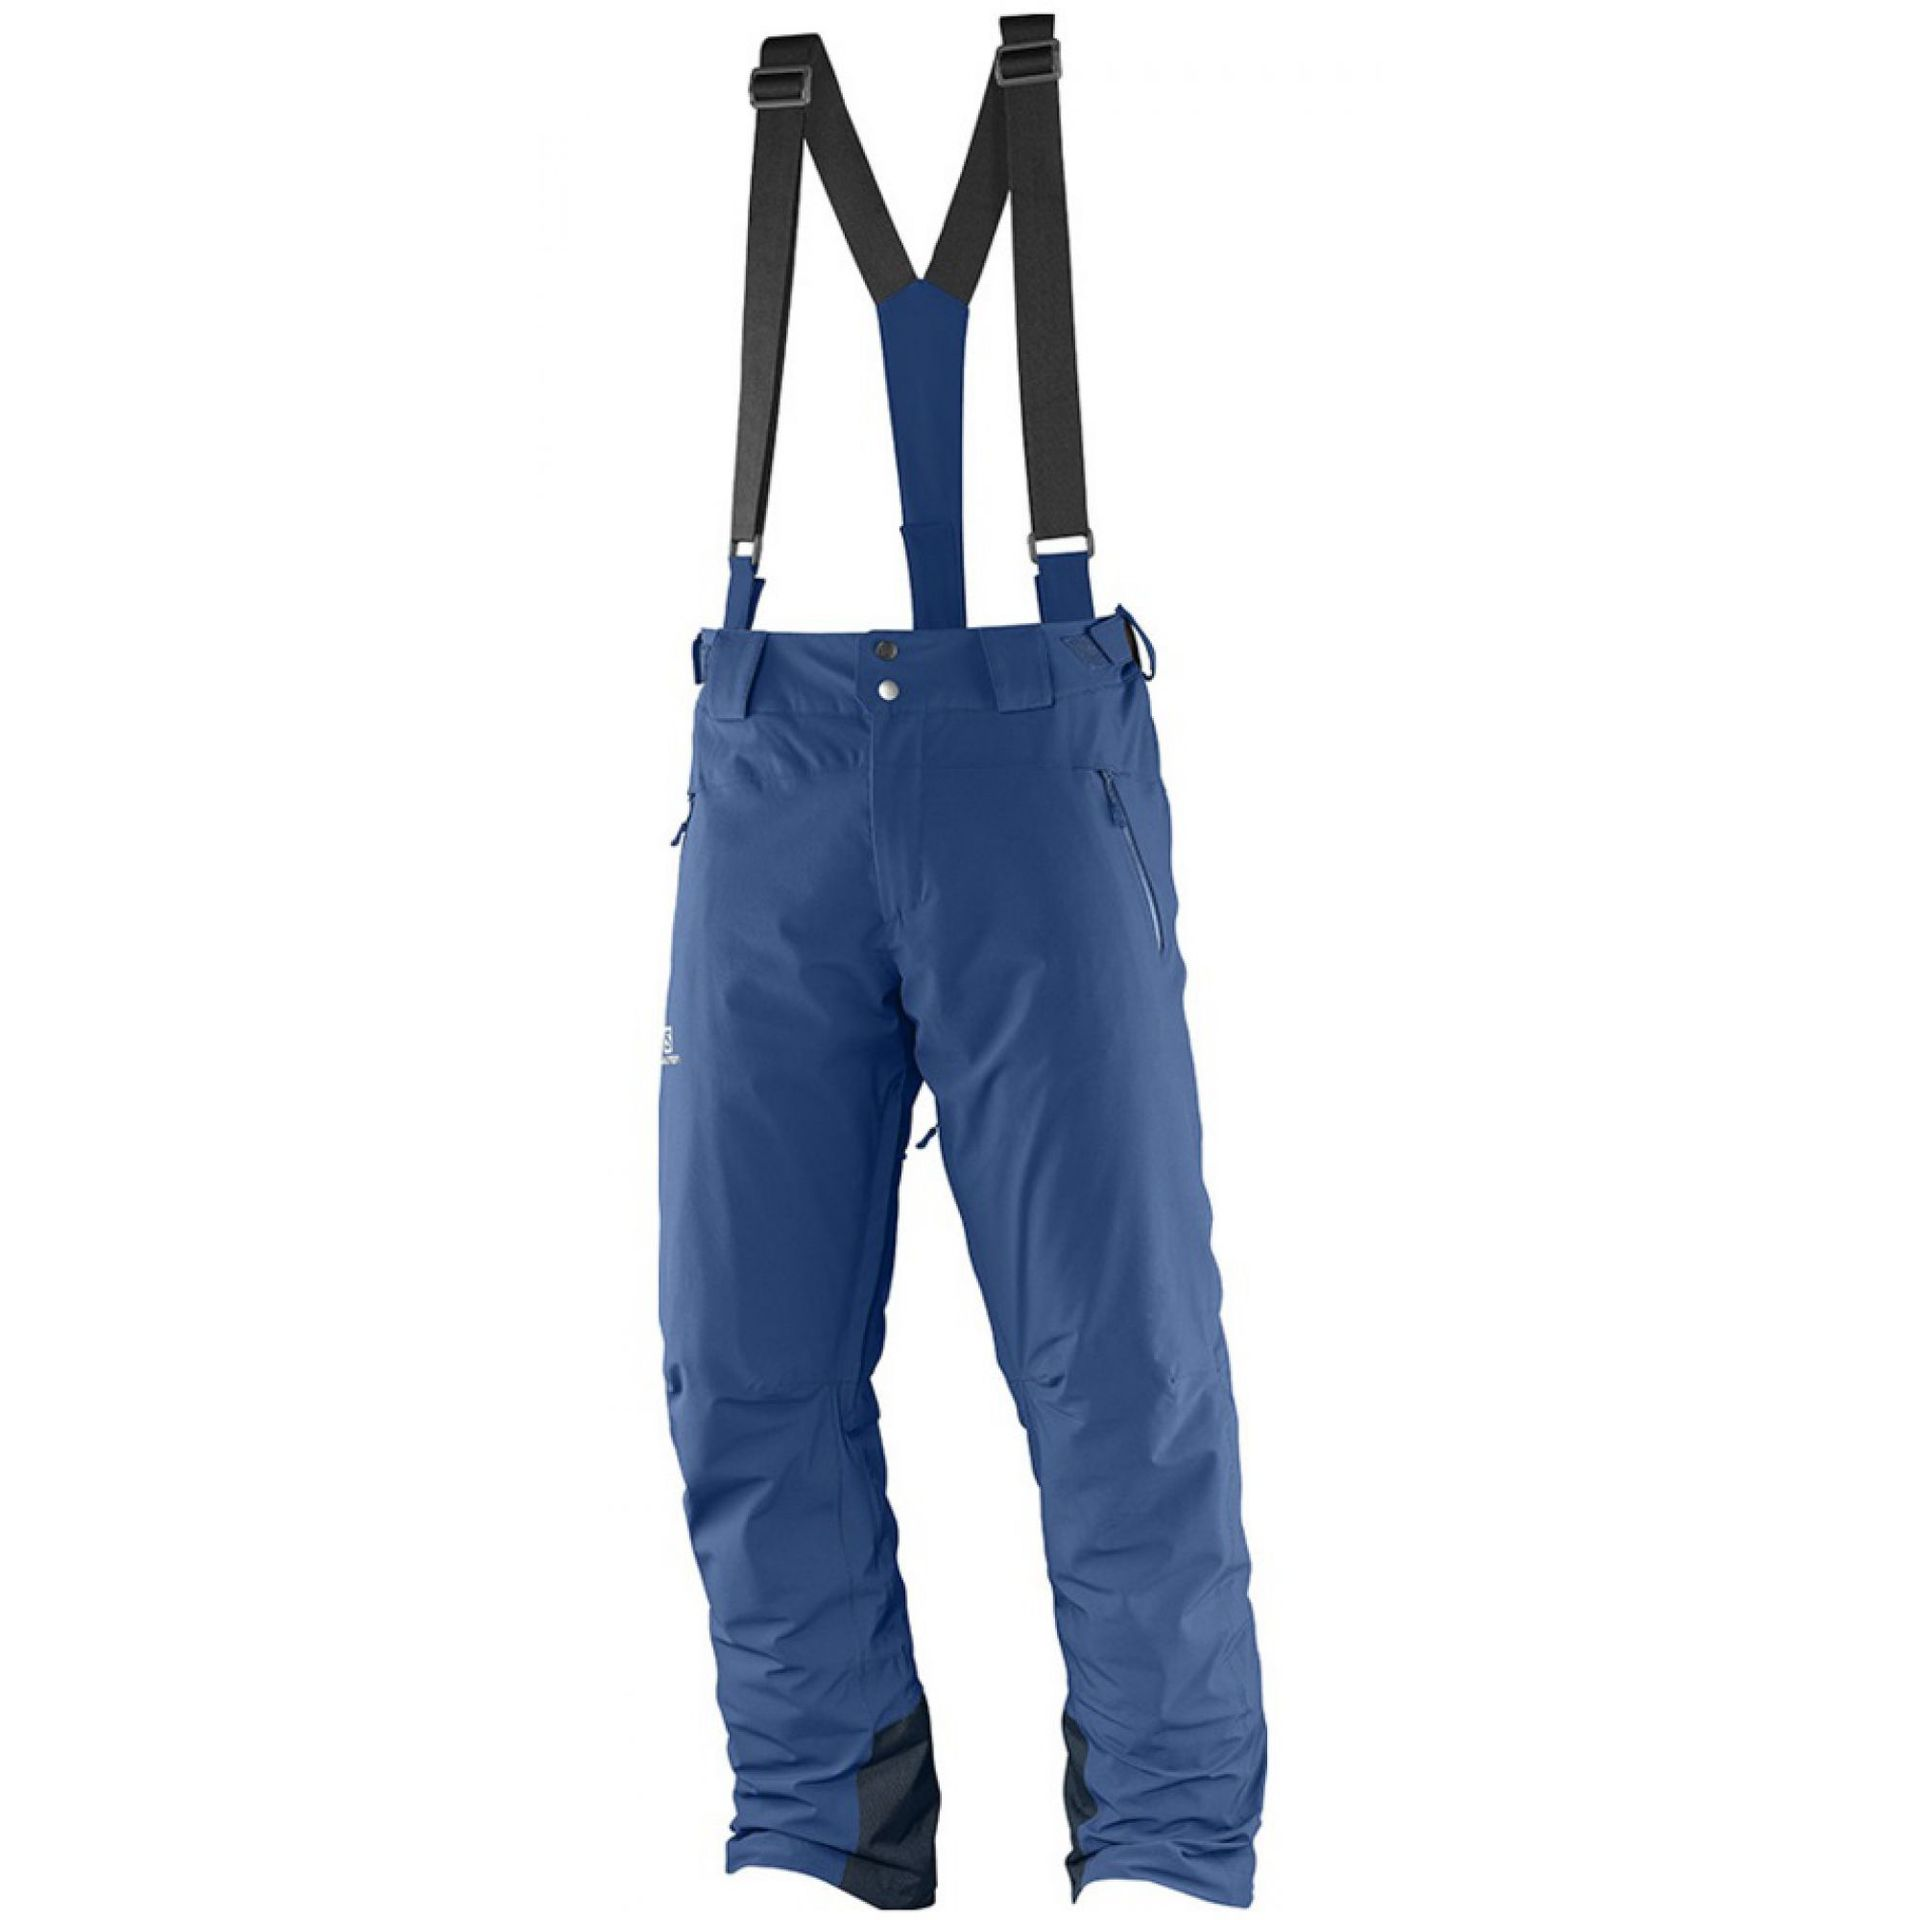 SPODNIE SALOMON ICEGLORY PANT MIDNIGHT BLUE